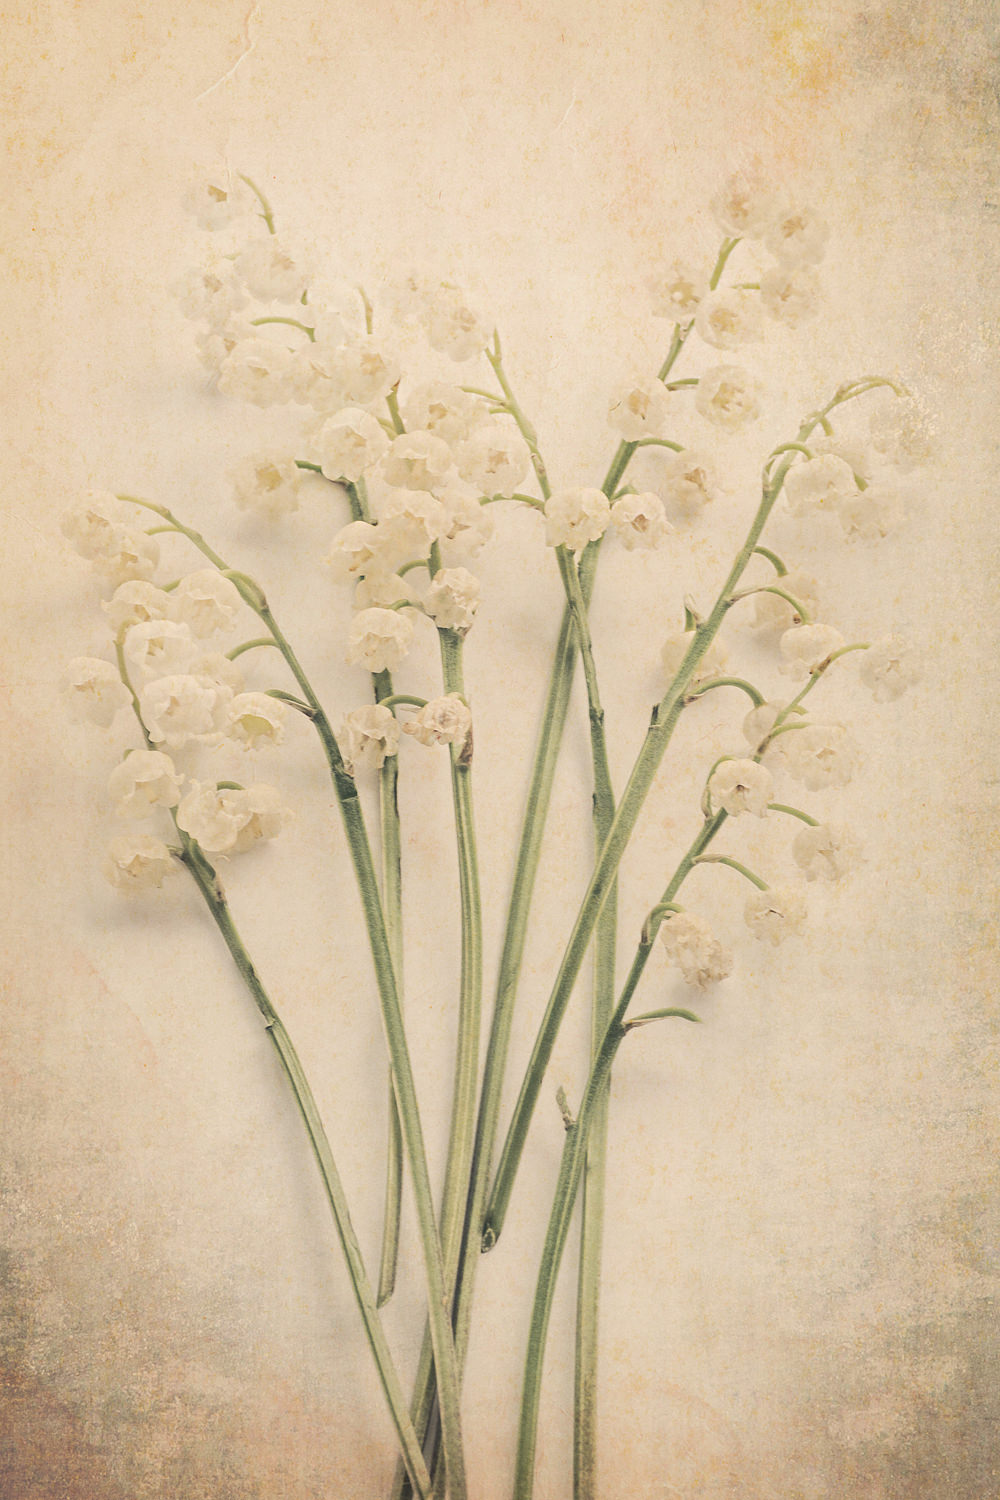 Scents of Spring - Lily of the Valley v